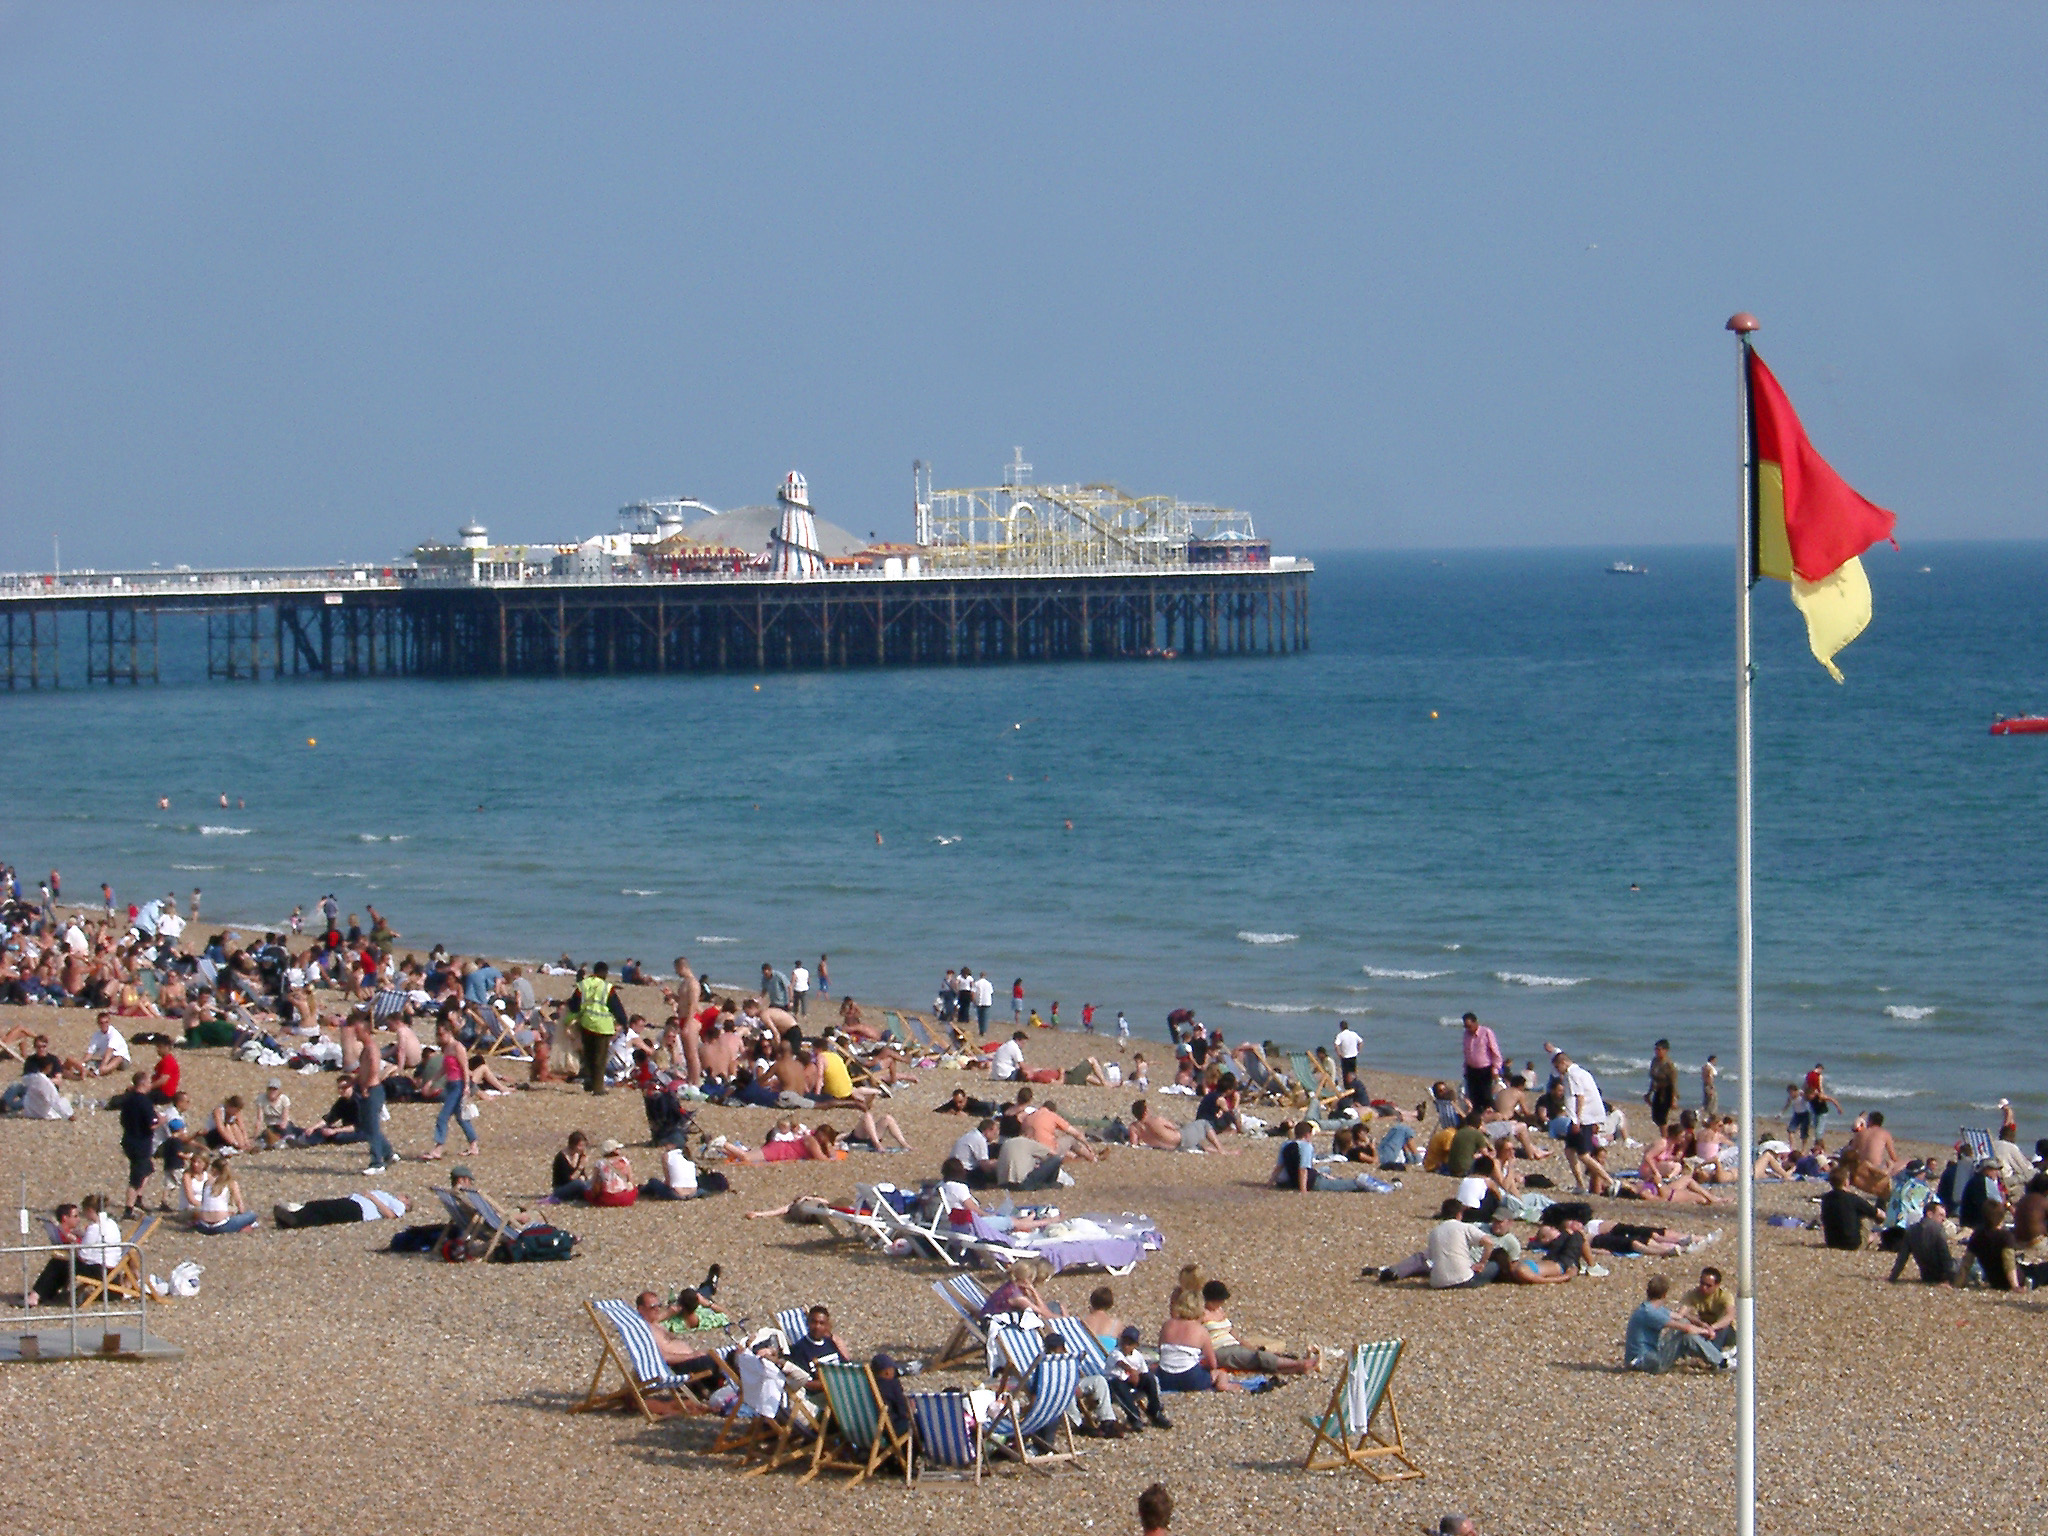 Tourists Relaxing at the Seaside Near the Famous Brighton Pier, also known as Palace Pier, Located in England.